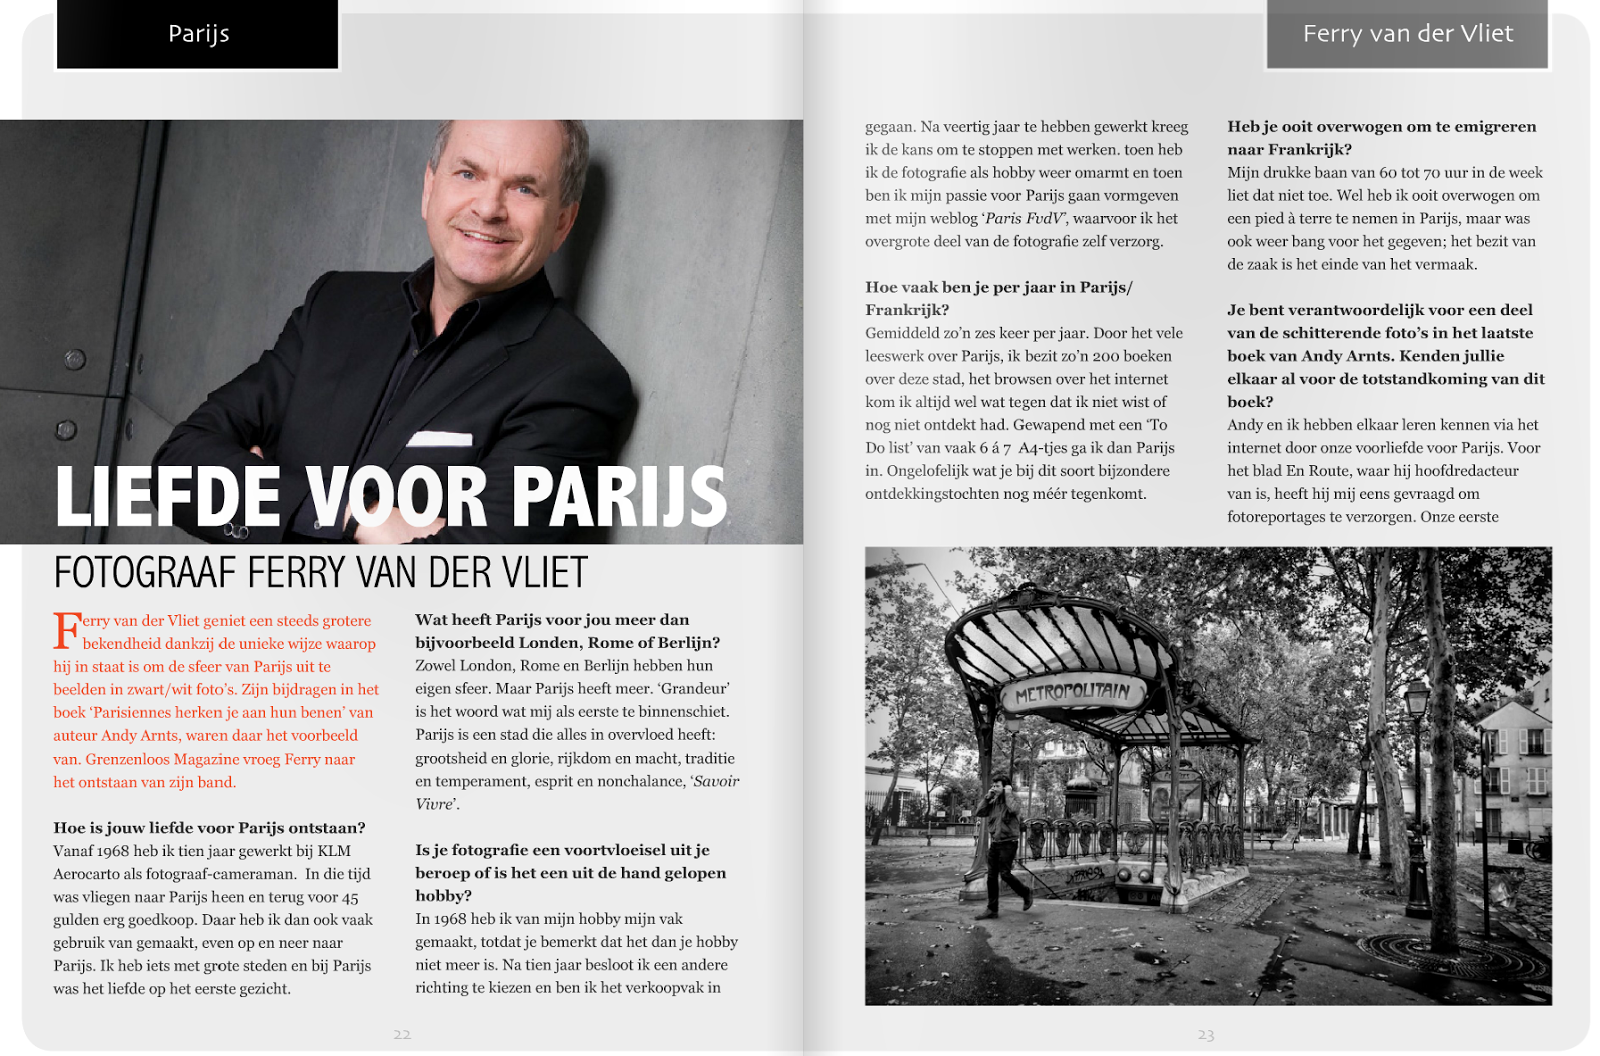 INTERVIEW in Grenzeloos Magazine